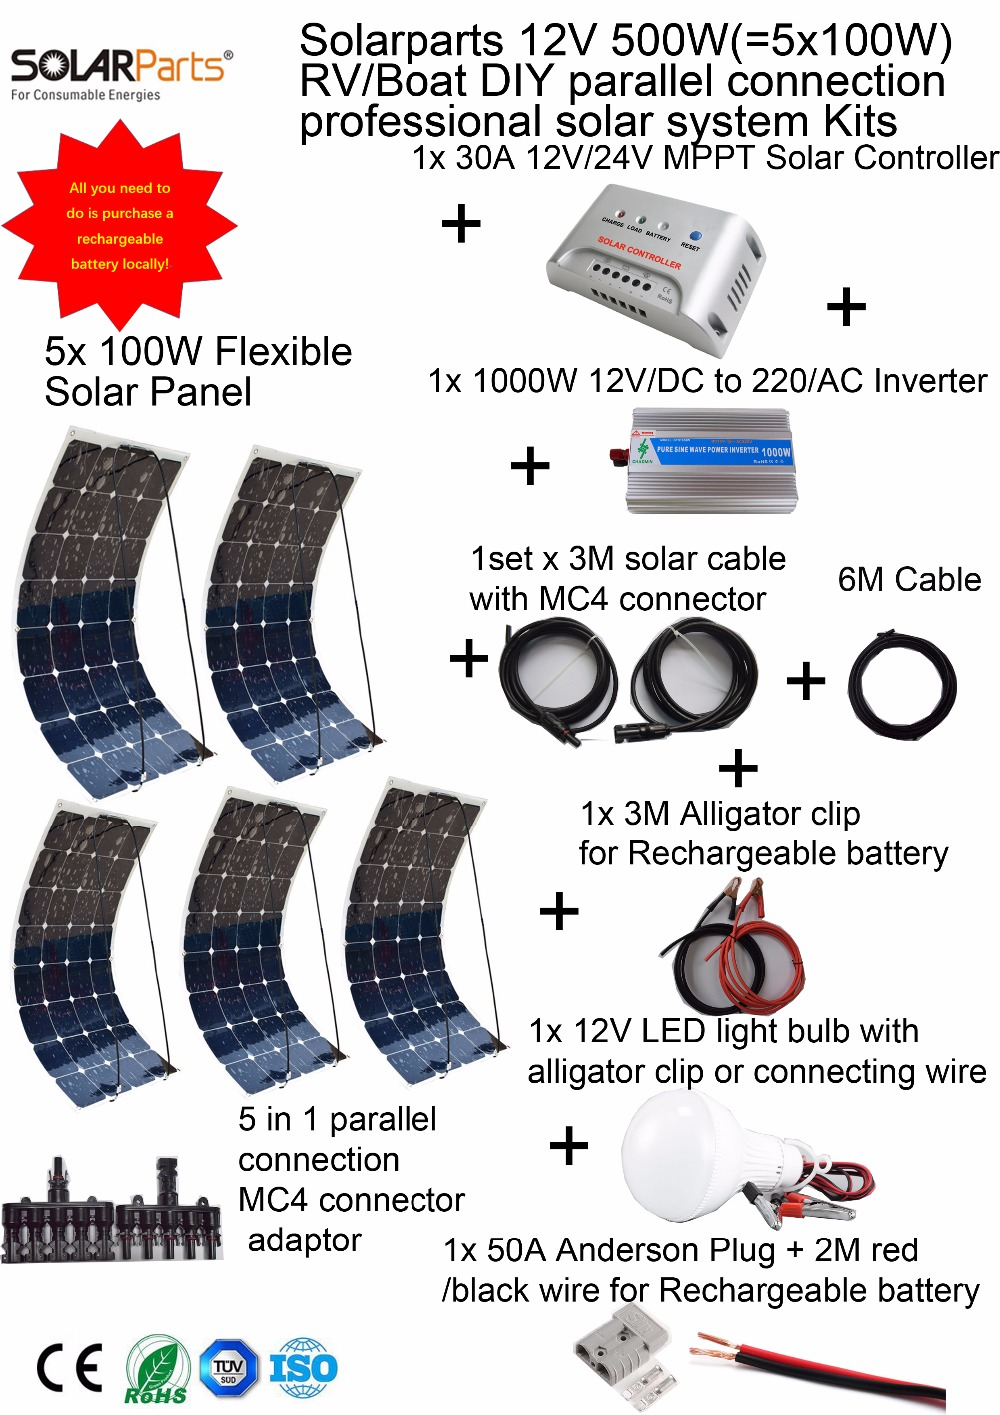 Solarparts 1x500W Professional DIY RV Boat Marine Kit Solar Home System 5x100W flexible solar panel MPPT